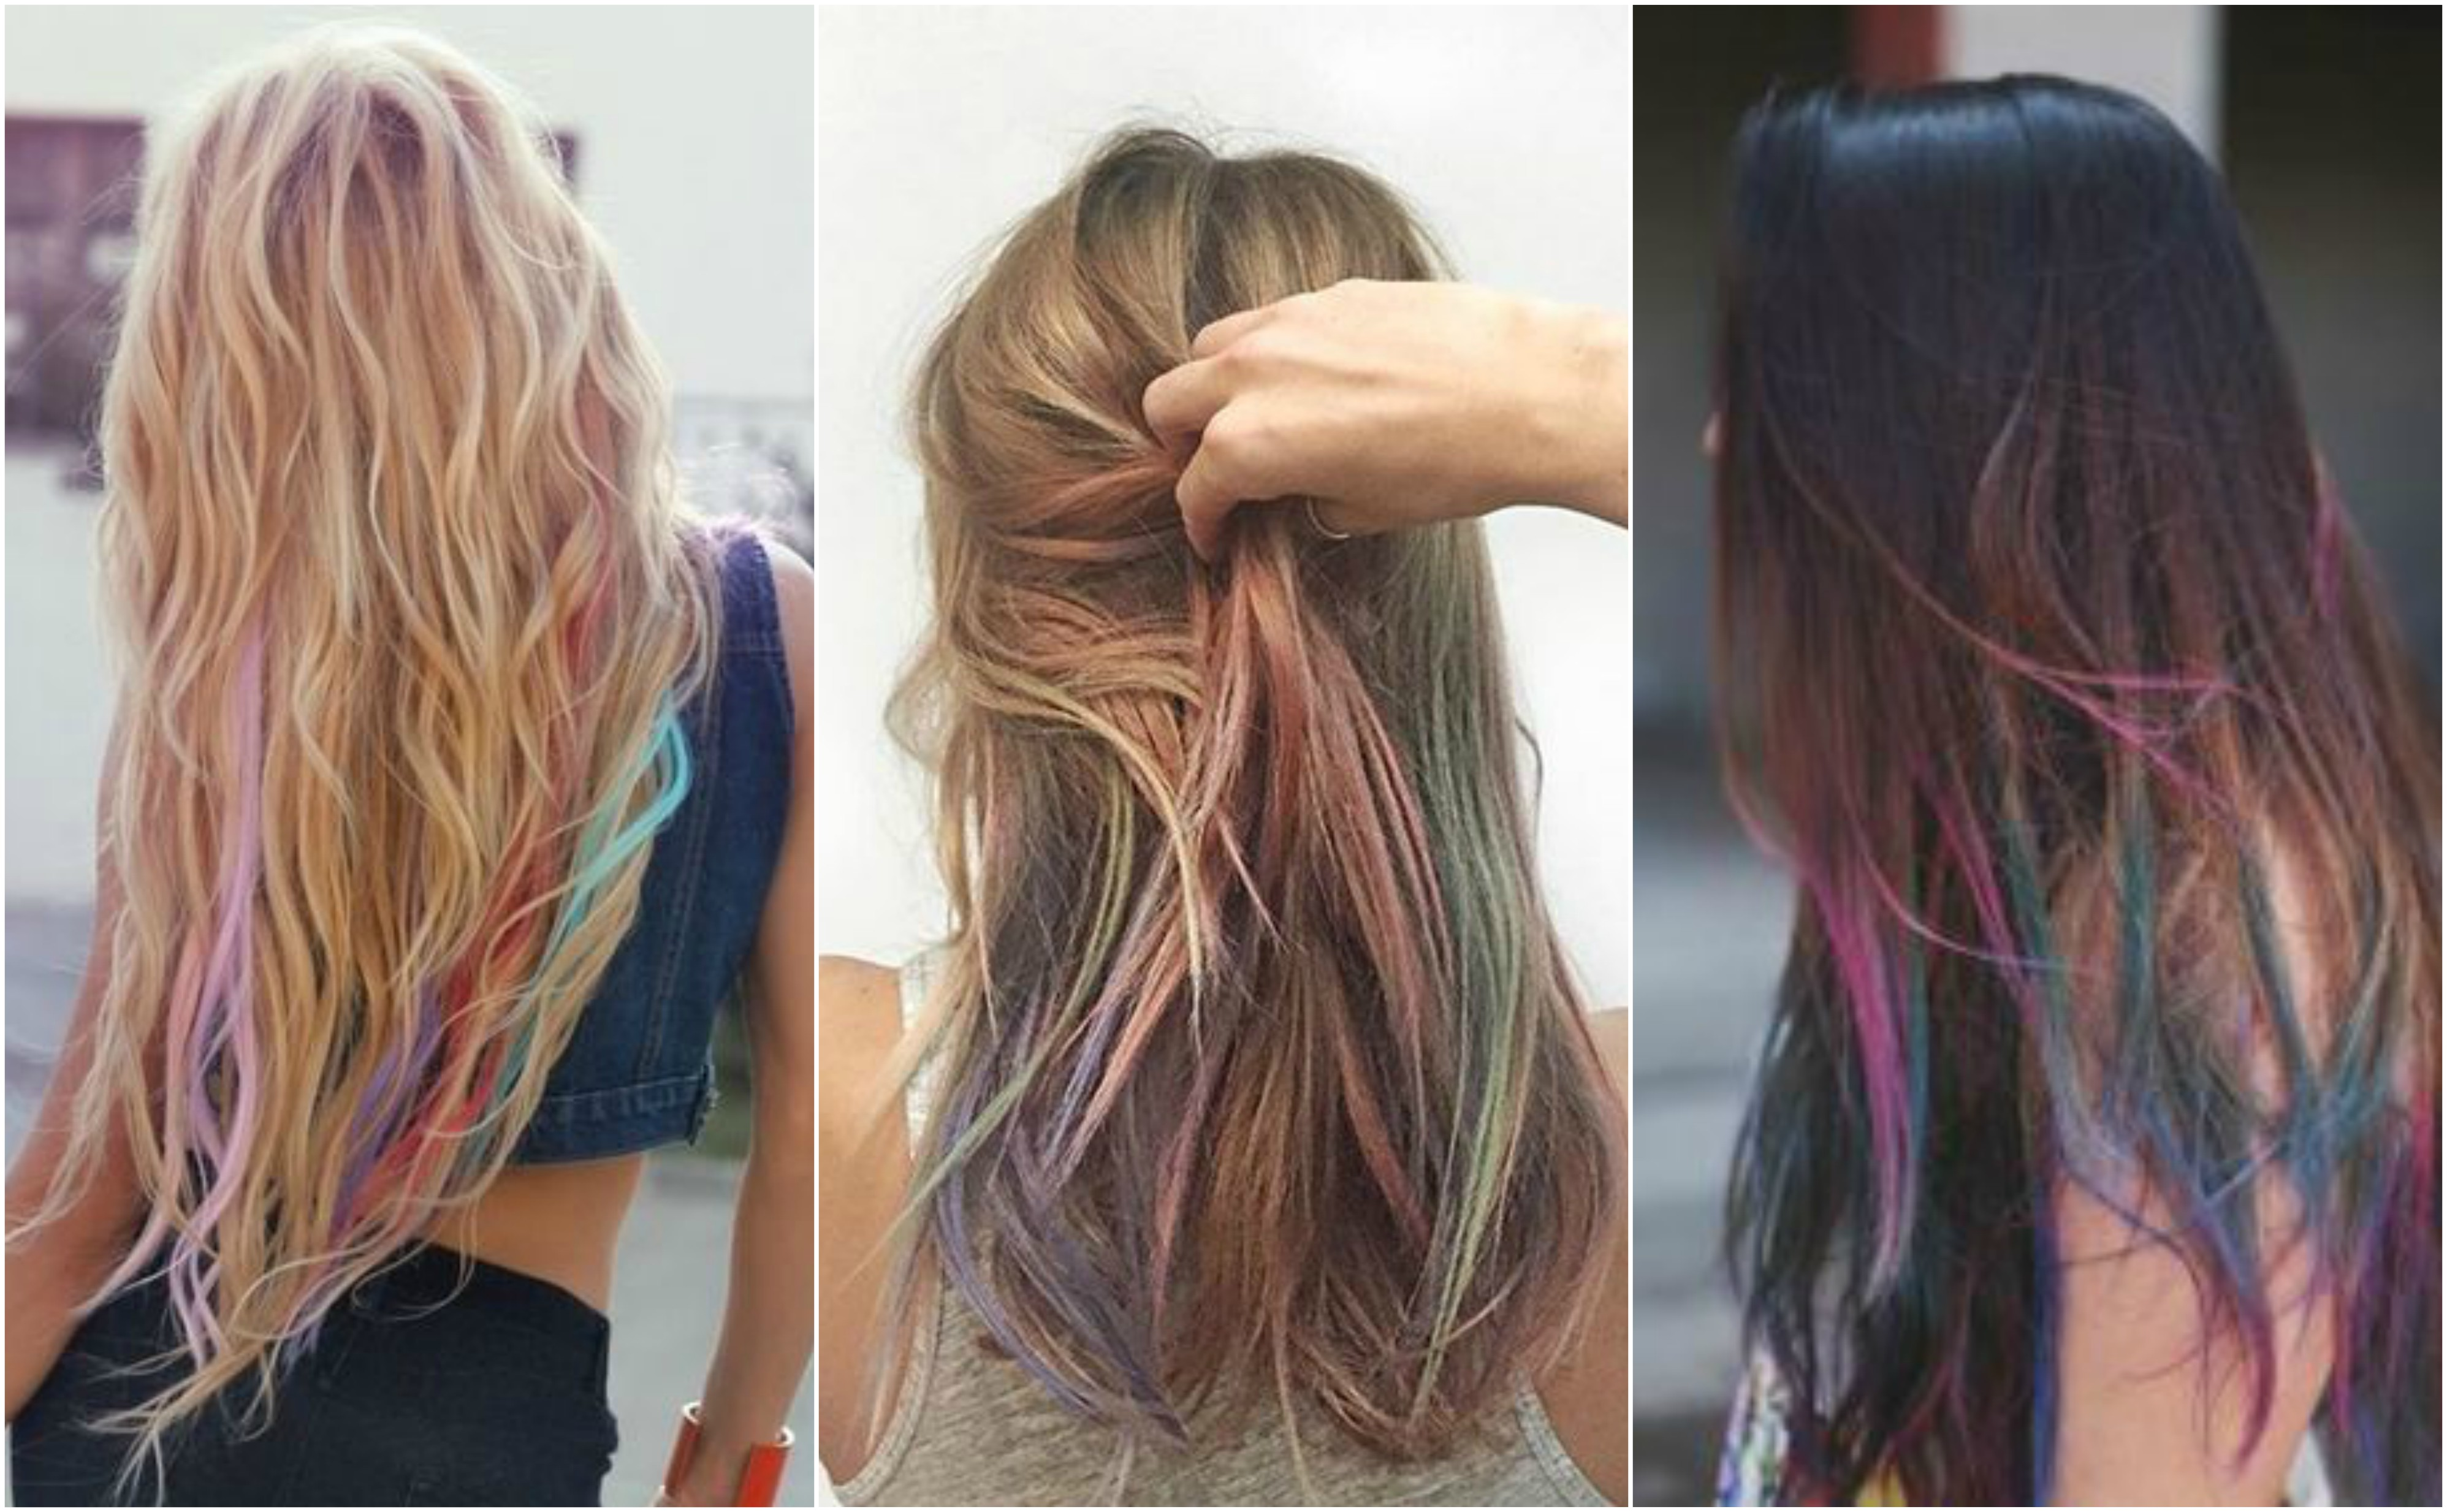 How to get subtle rainbow highlights